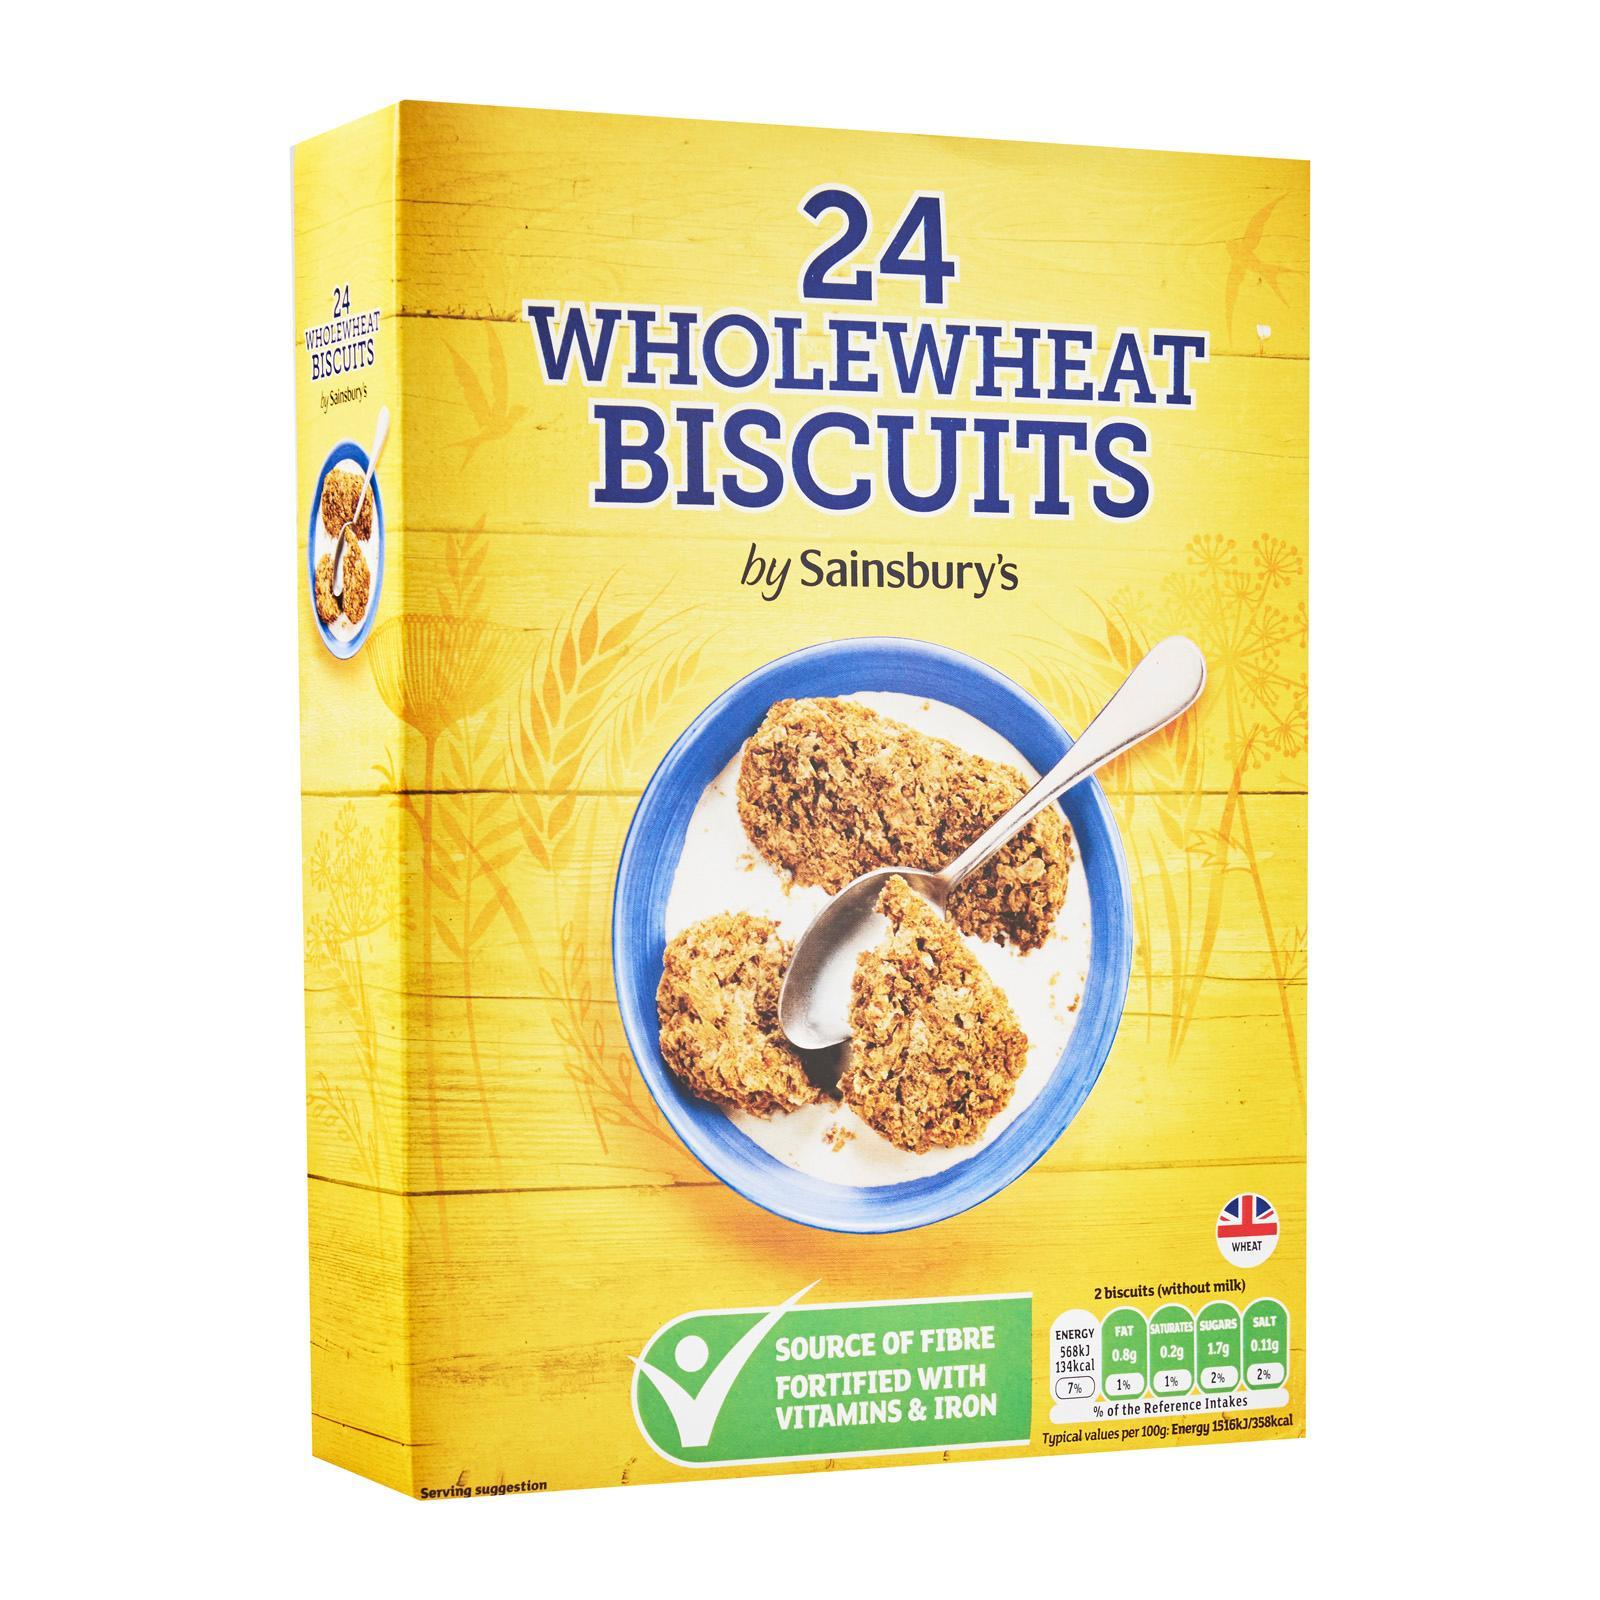 Sainsbury's Wholewheat Biscuits Cereal